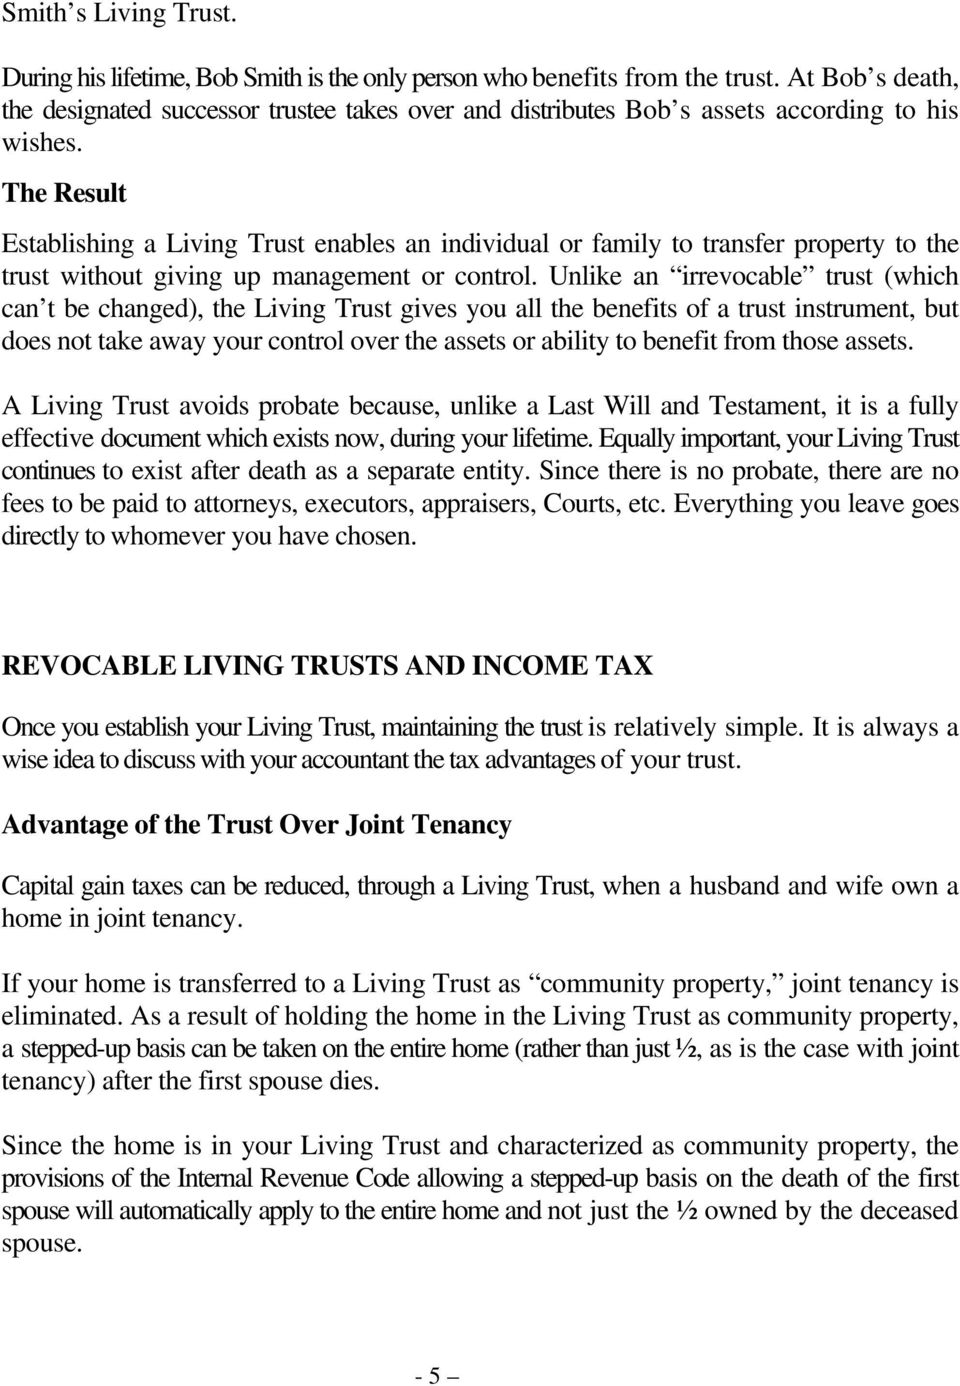 The Result Establishing a Living Trust enables an individual or family to transfer property to the trust without giving up management or control.